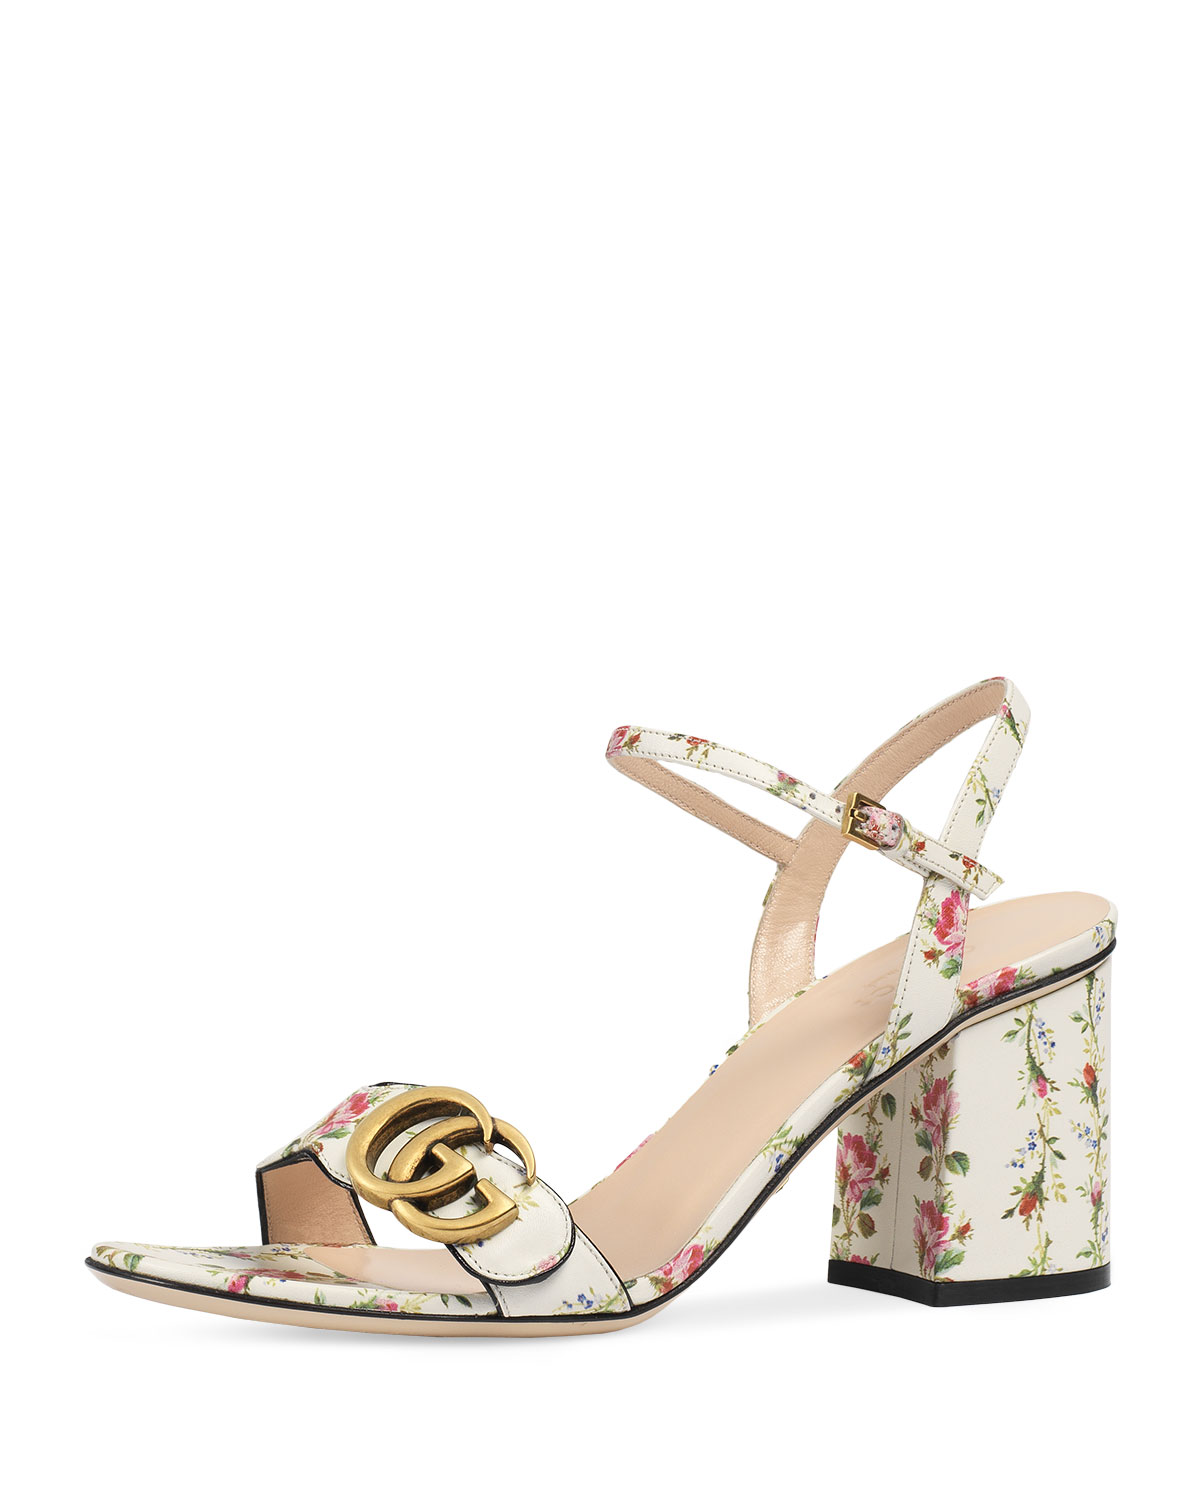 982ce8681 Gucci Marmont Rose 75mm Sandal, Floral/White | Neiman Marcus